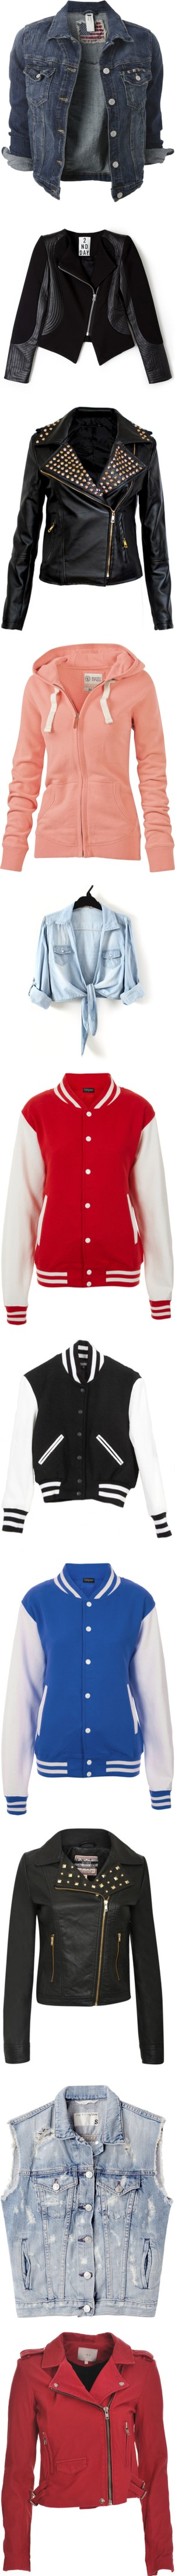 """""""Jacket & sweater - Items"""" by rominix011 ❤ liked on Polyvore"""